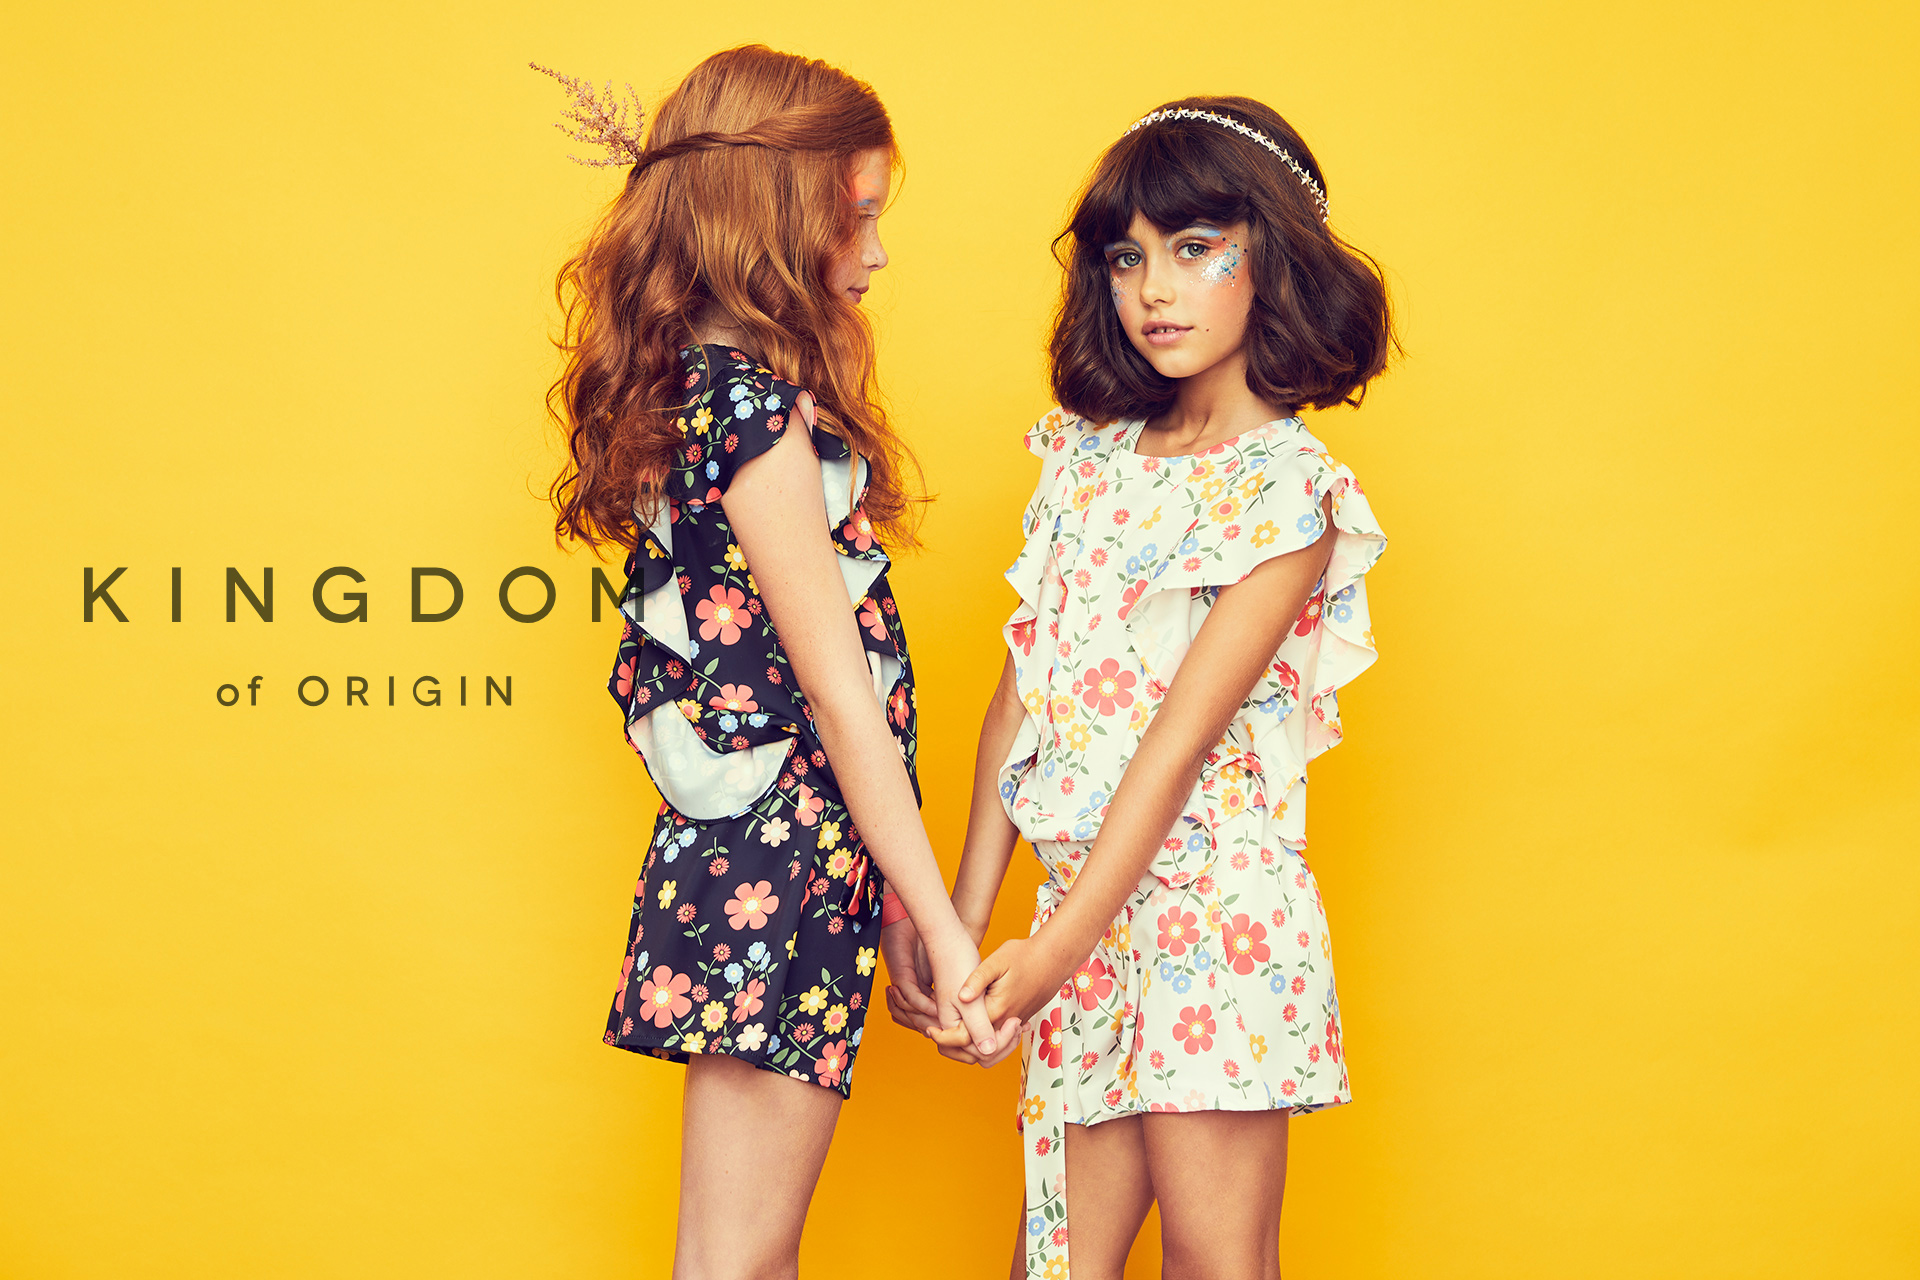 KOO girl kids fashion friends holding hands